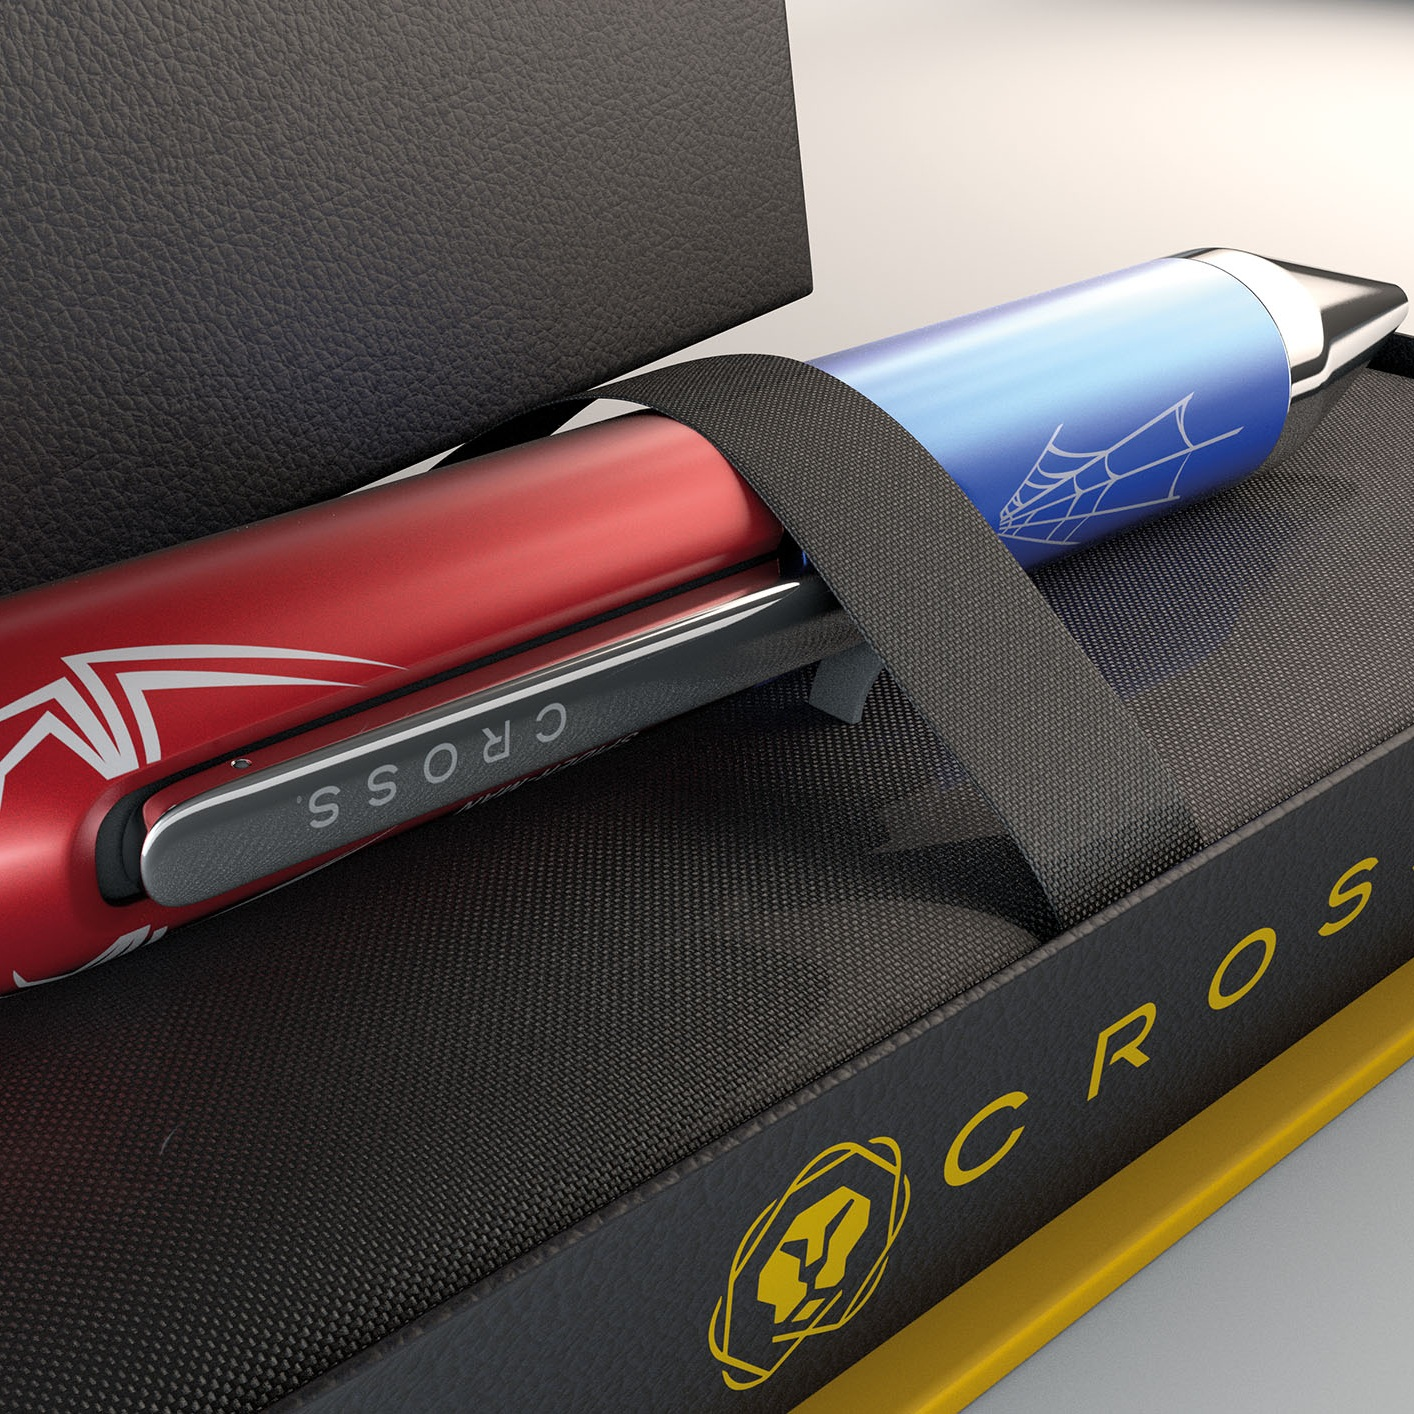 Product & Packaging - We can create product CGI for anything you can think of. Whether you want a CGI model to showcase and market your product before manufacturing, or if you just want the flexibility that 3D modelling allows you to have, producing a CGI product image can be a quick and flexible way to create content when you need to get to market fast.